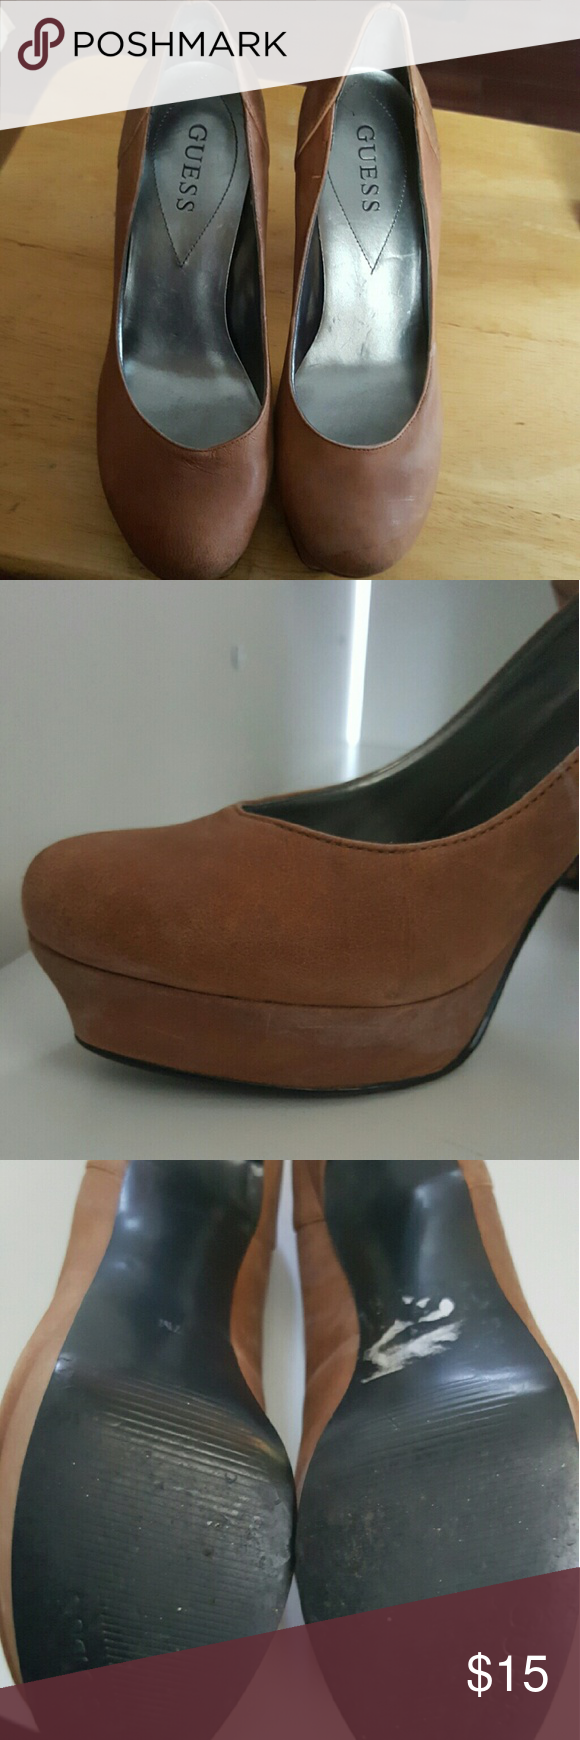 Uncategorized Leather Like Material guess brown pumps size 7 great condition hidden platform soft leather like material 7m